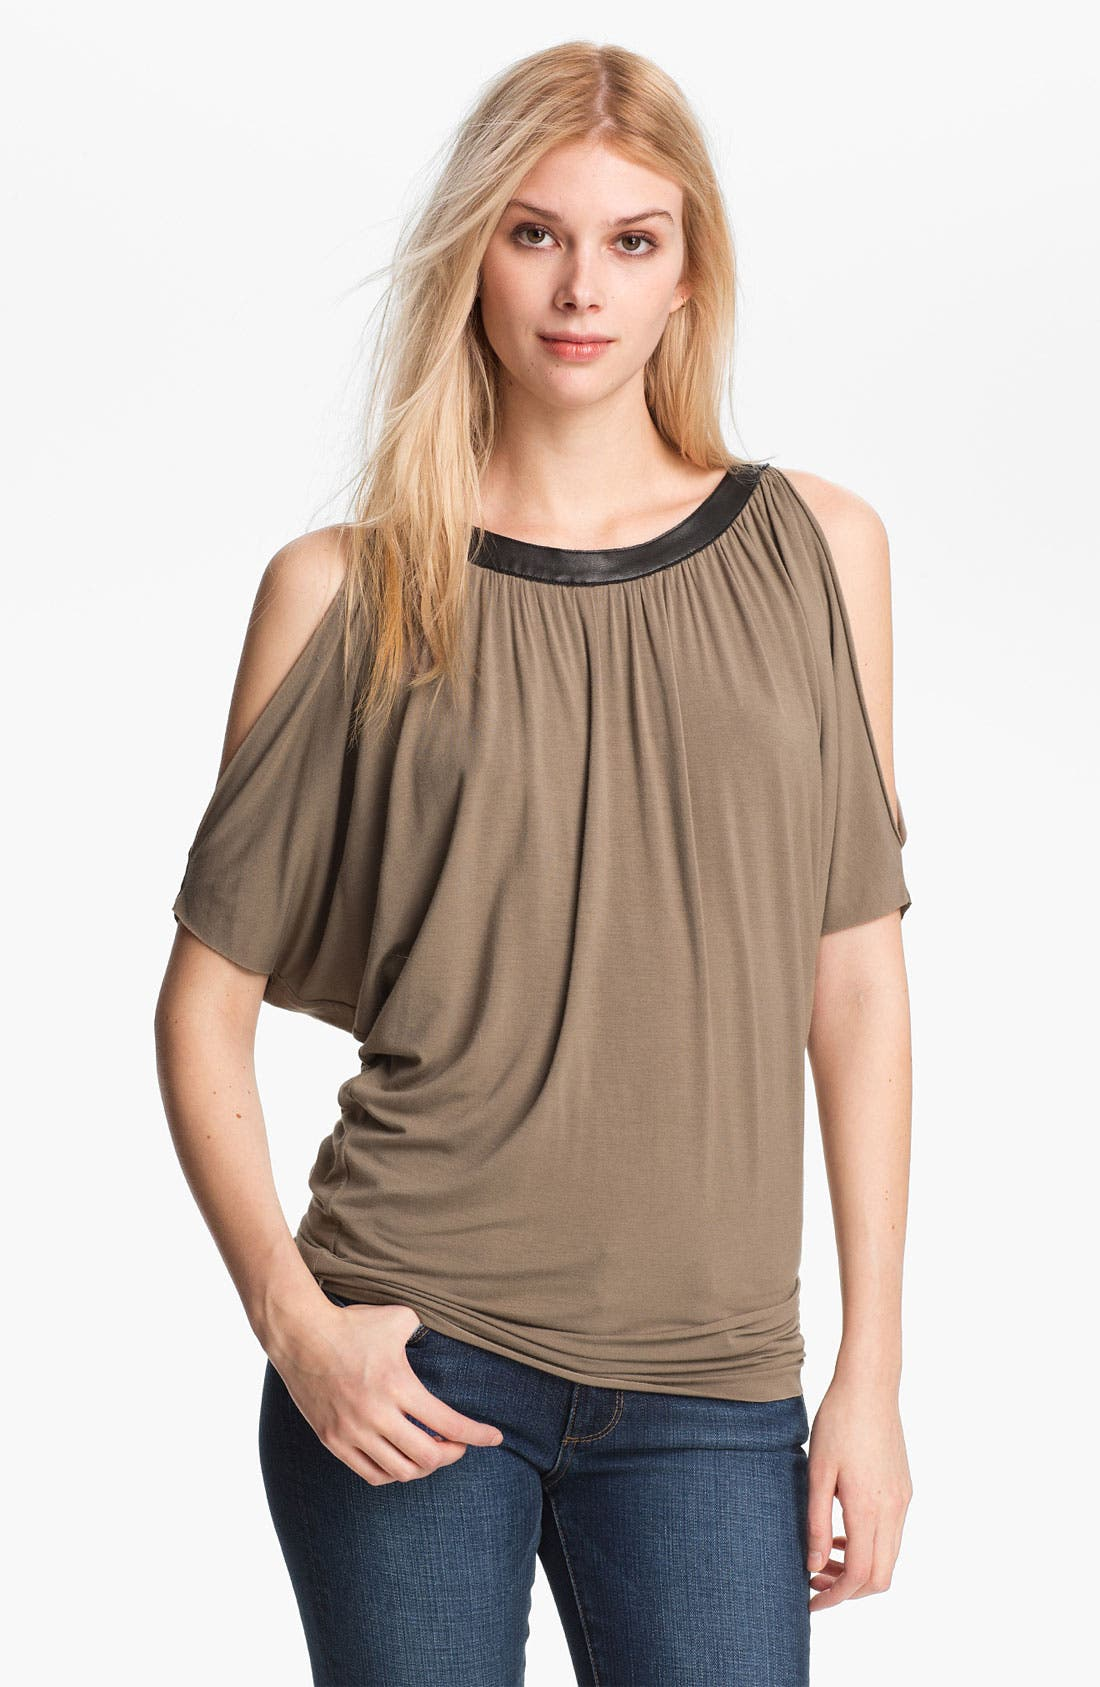 Alternate Image 1 Selected - Bailey 44 'Picasso' Faux Leather Trim Cold Shoulder Top